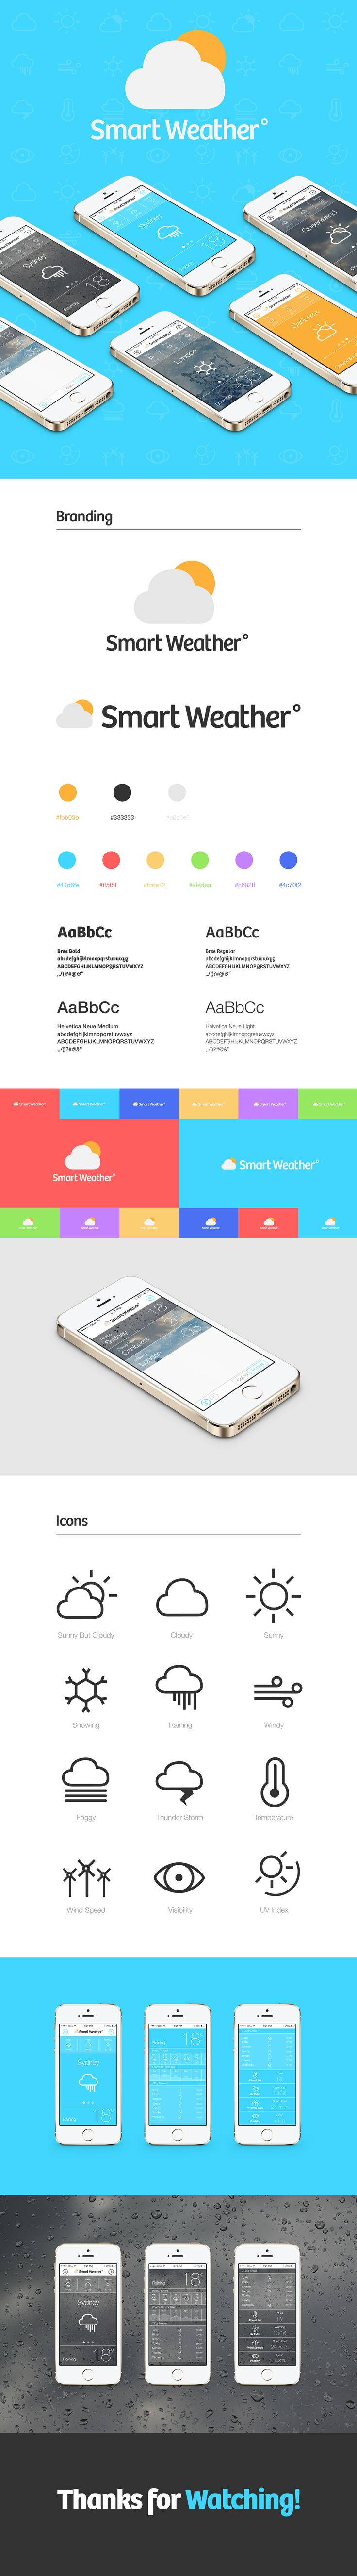 Smart Weather - This was another application I designed for my Major Project at university. #appdesign #graphicdesign #UX #UI #ios #uxdesign #uidesign #app #weatherapp #weather #icondesign